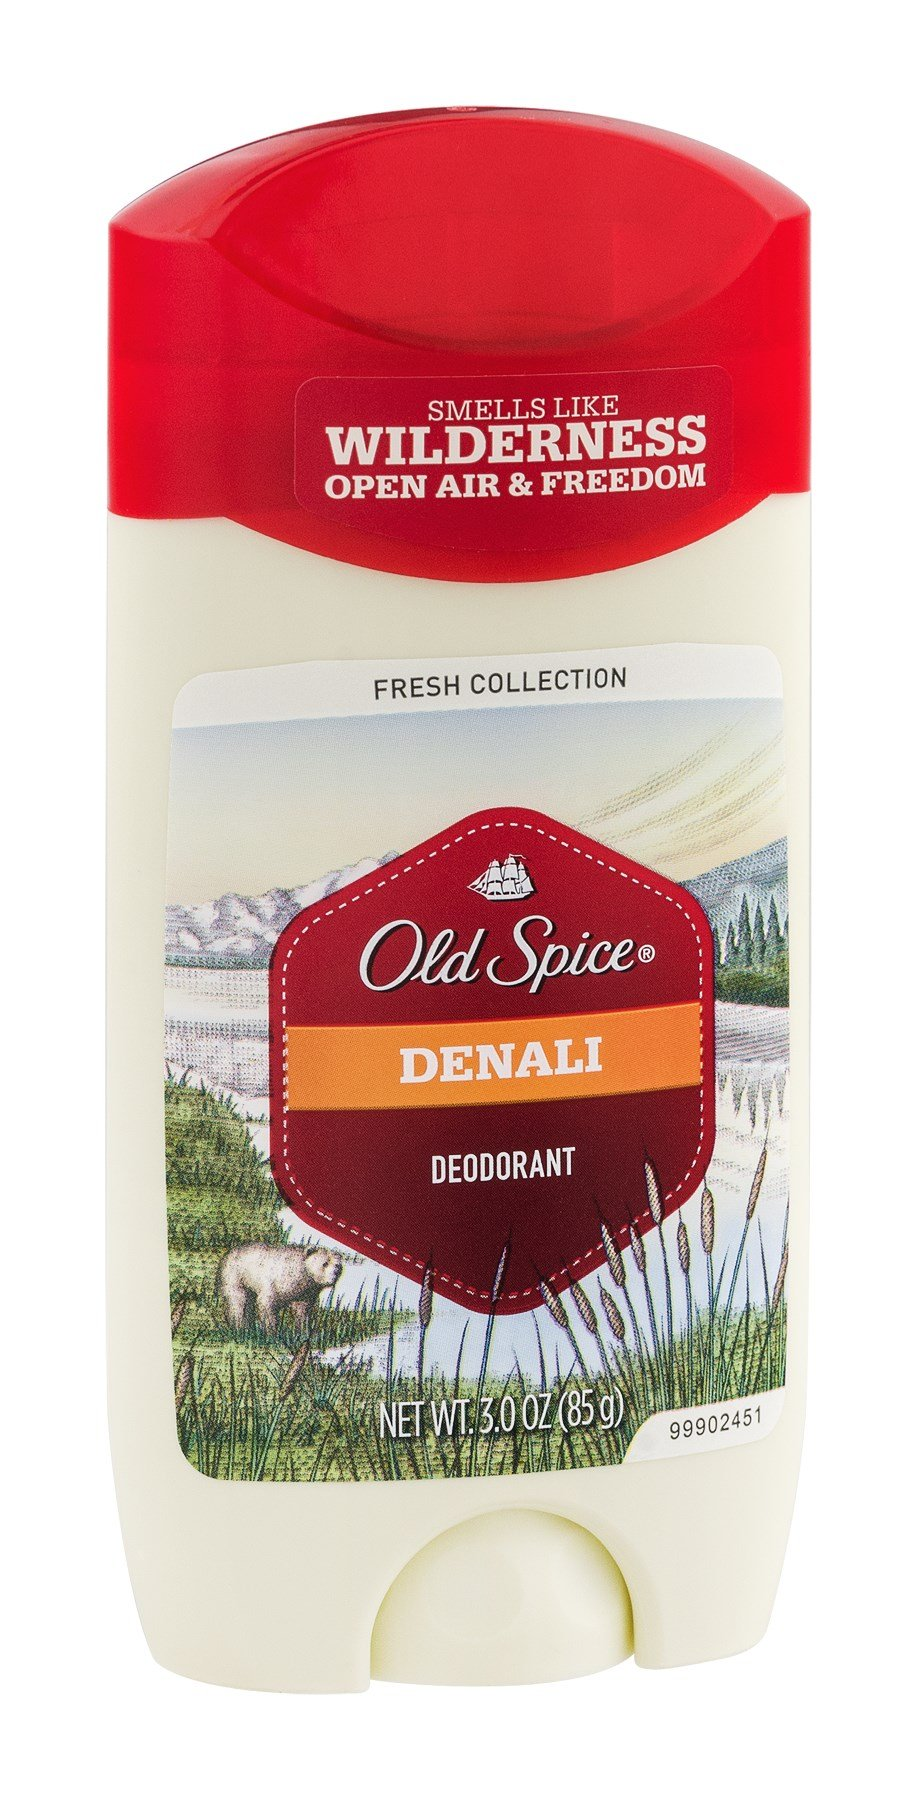 Old Spice Fresh Denali Deodorant 3 Oz, Pack of 18